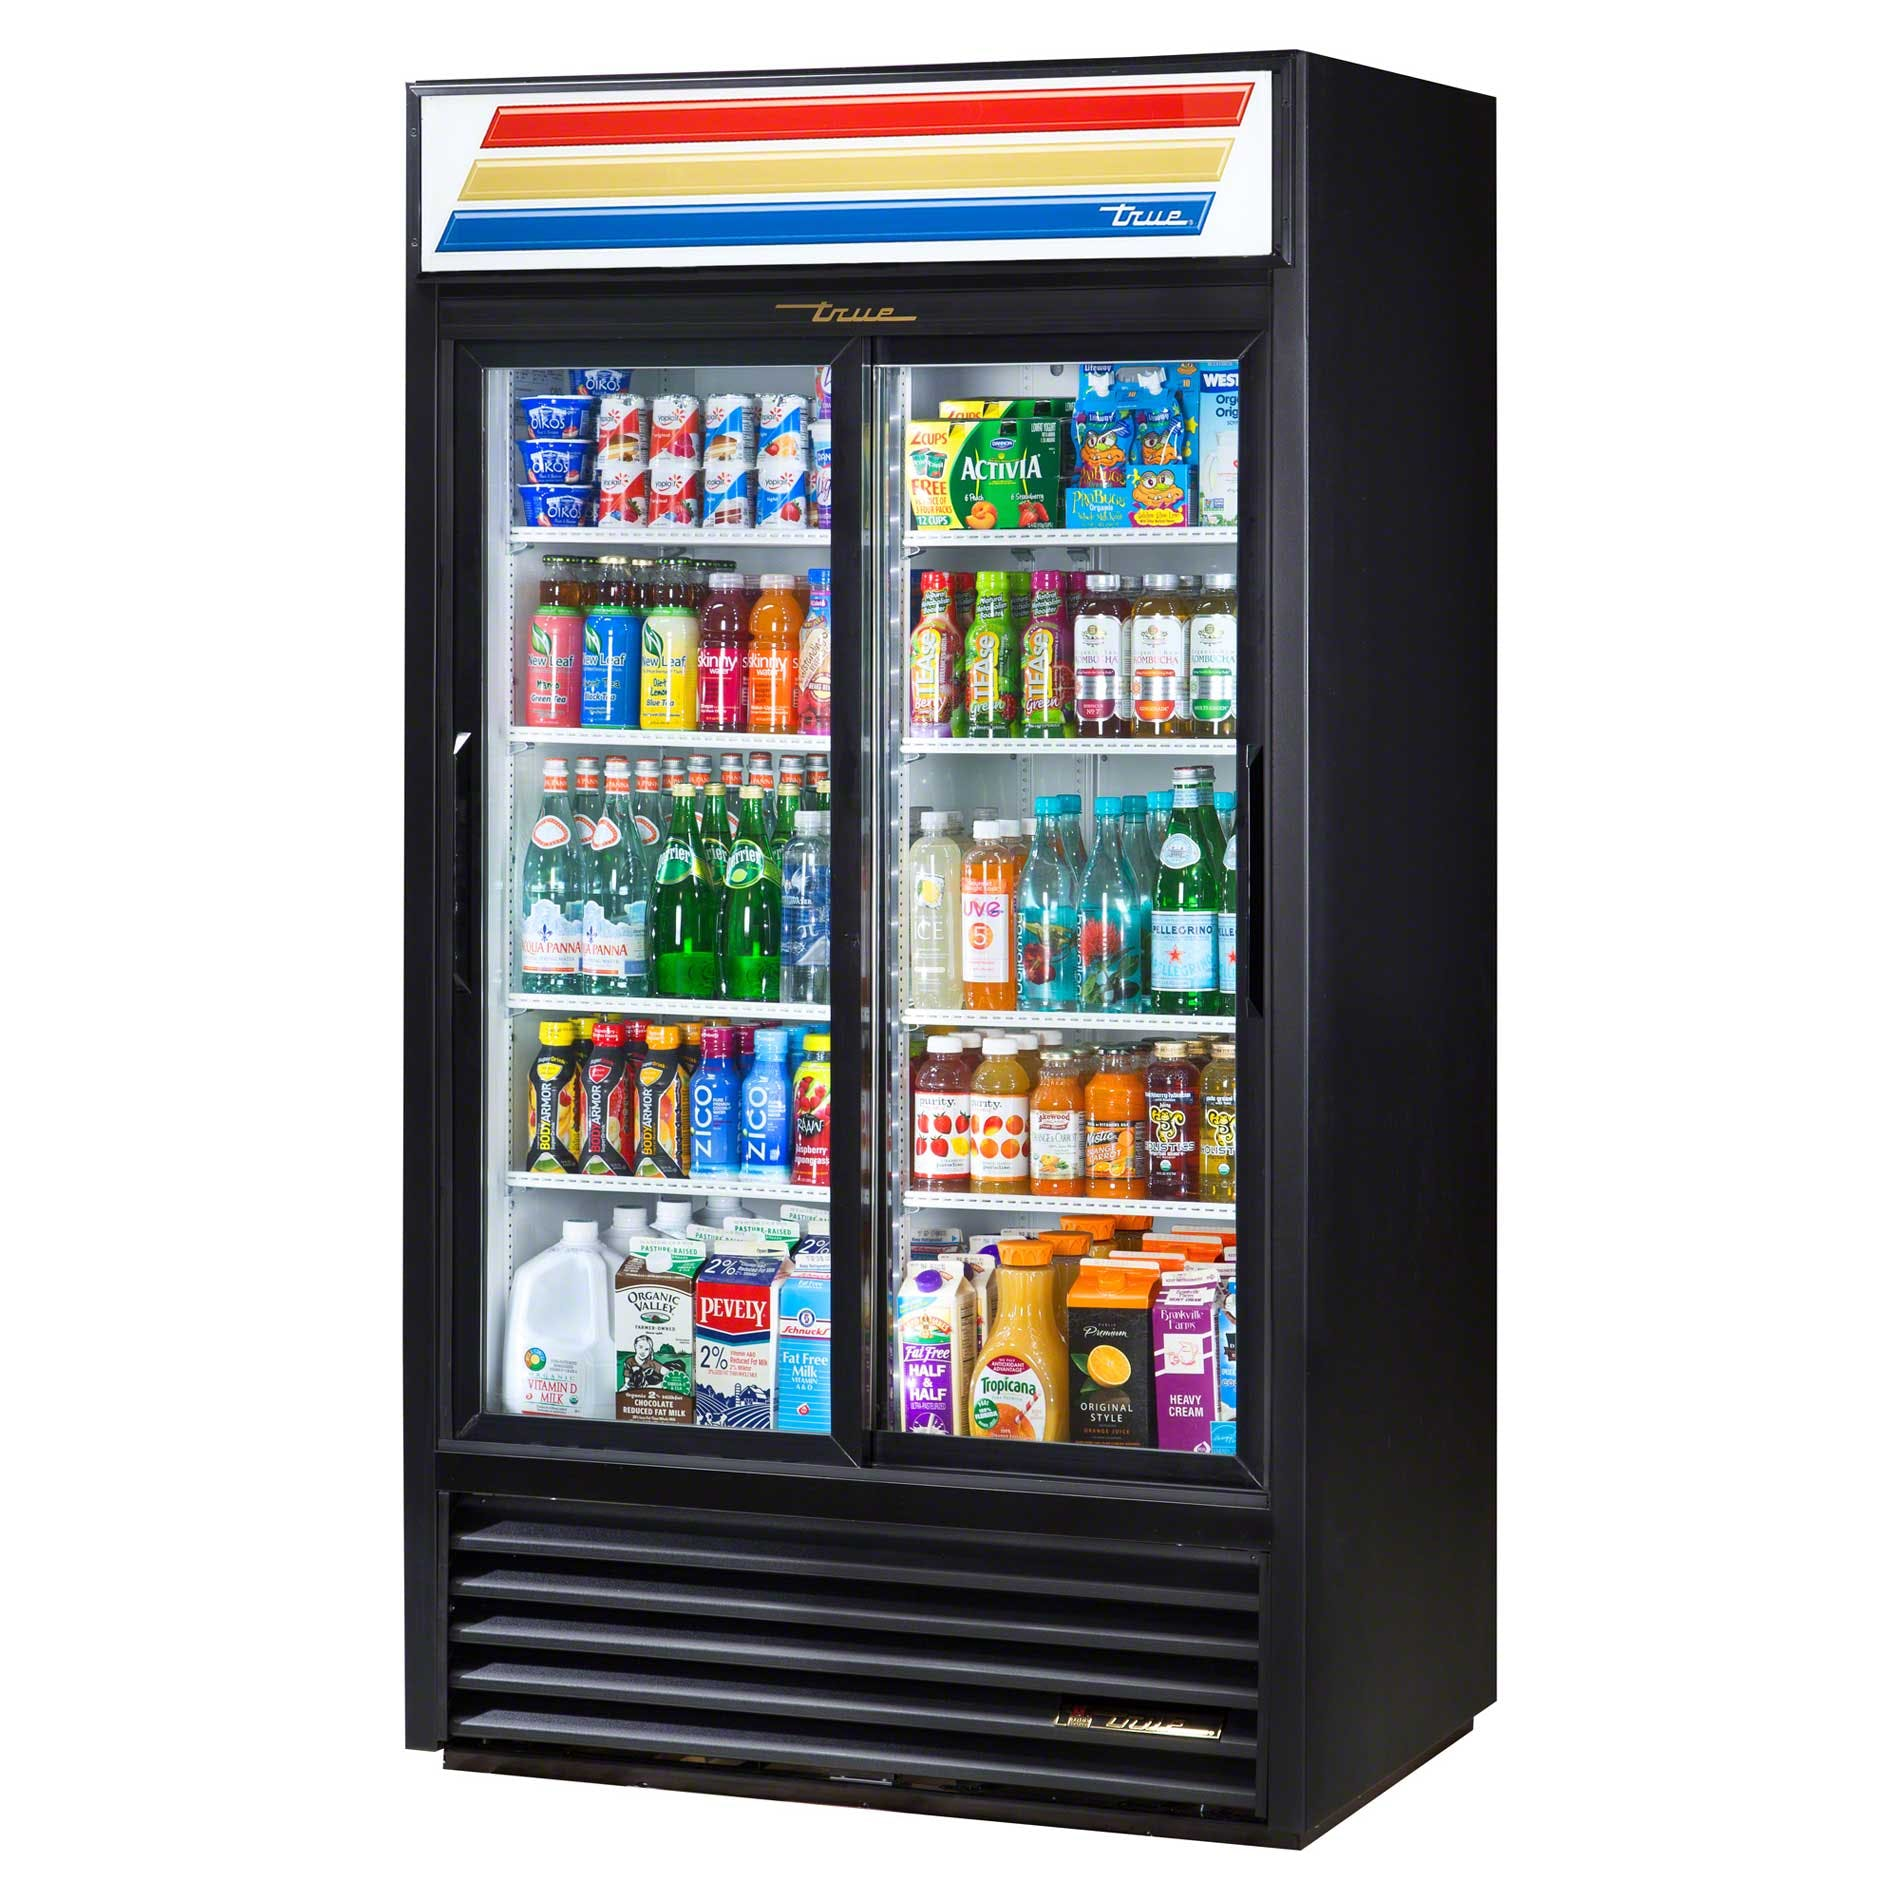 "True - GDM-37-LD 44"" Sliding Glass Door Merchandiser Refrigerator LED Commercial refrigerator sold by Food Service Warehouse"